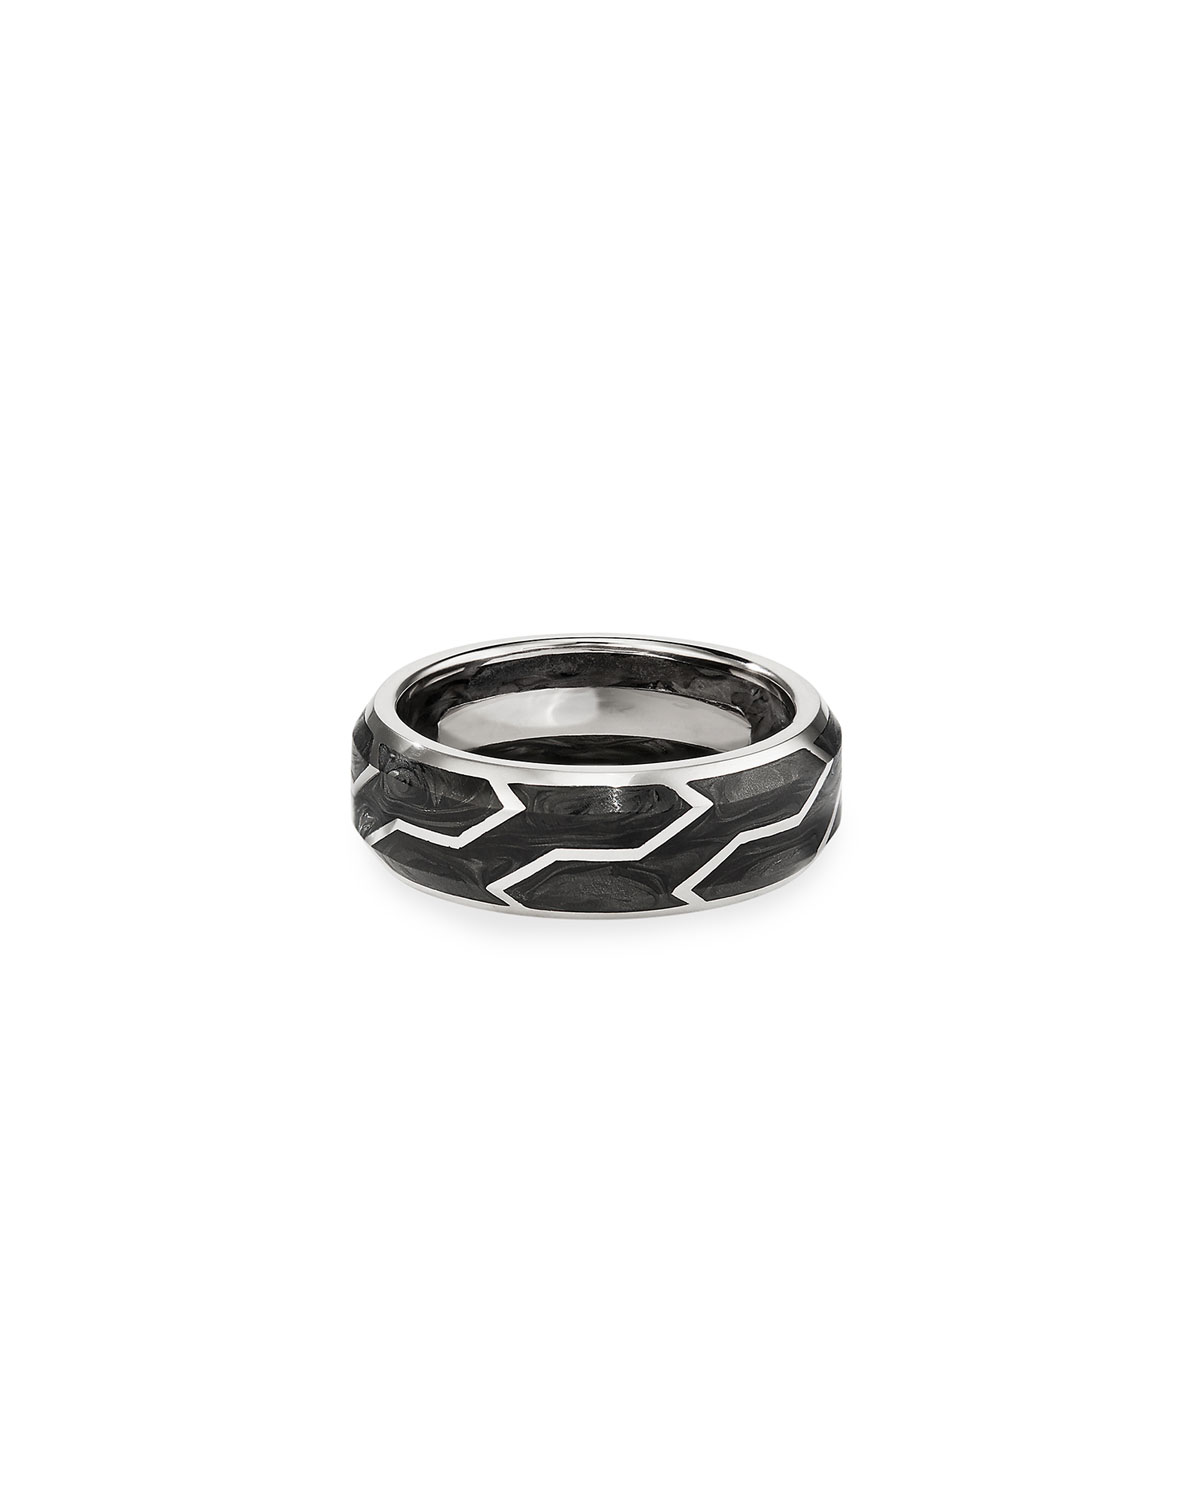 Men's Forged Carbon/18k White Gold Band Ring